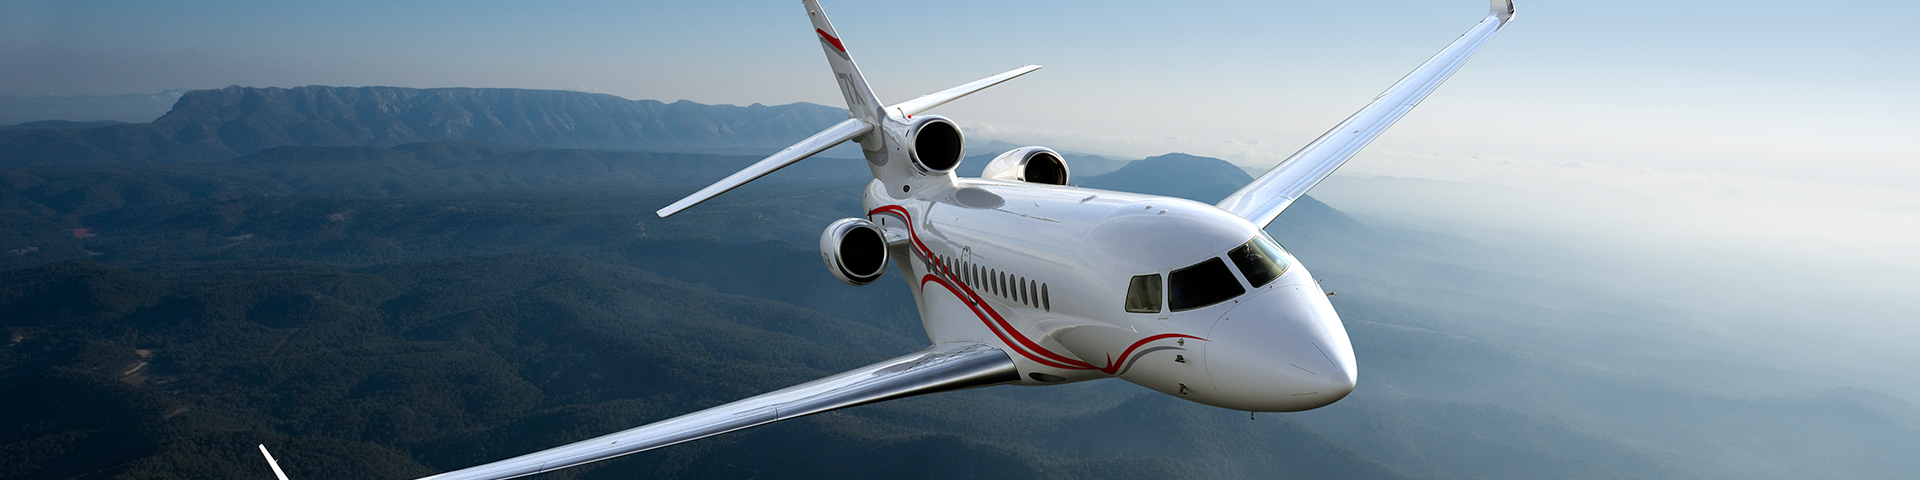 Falcon7X1 - Falcon 7X Private Jet